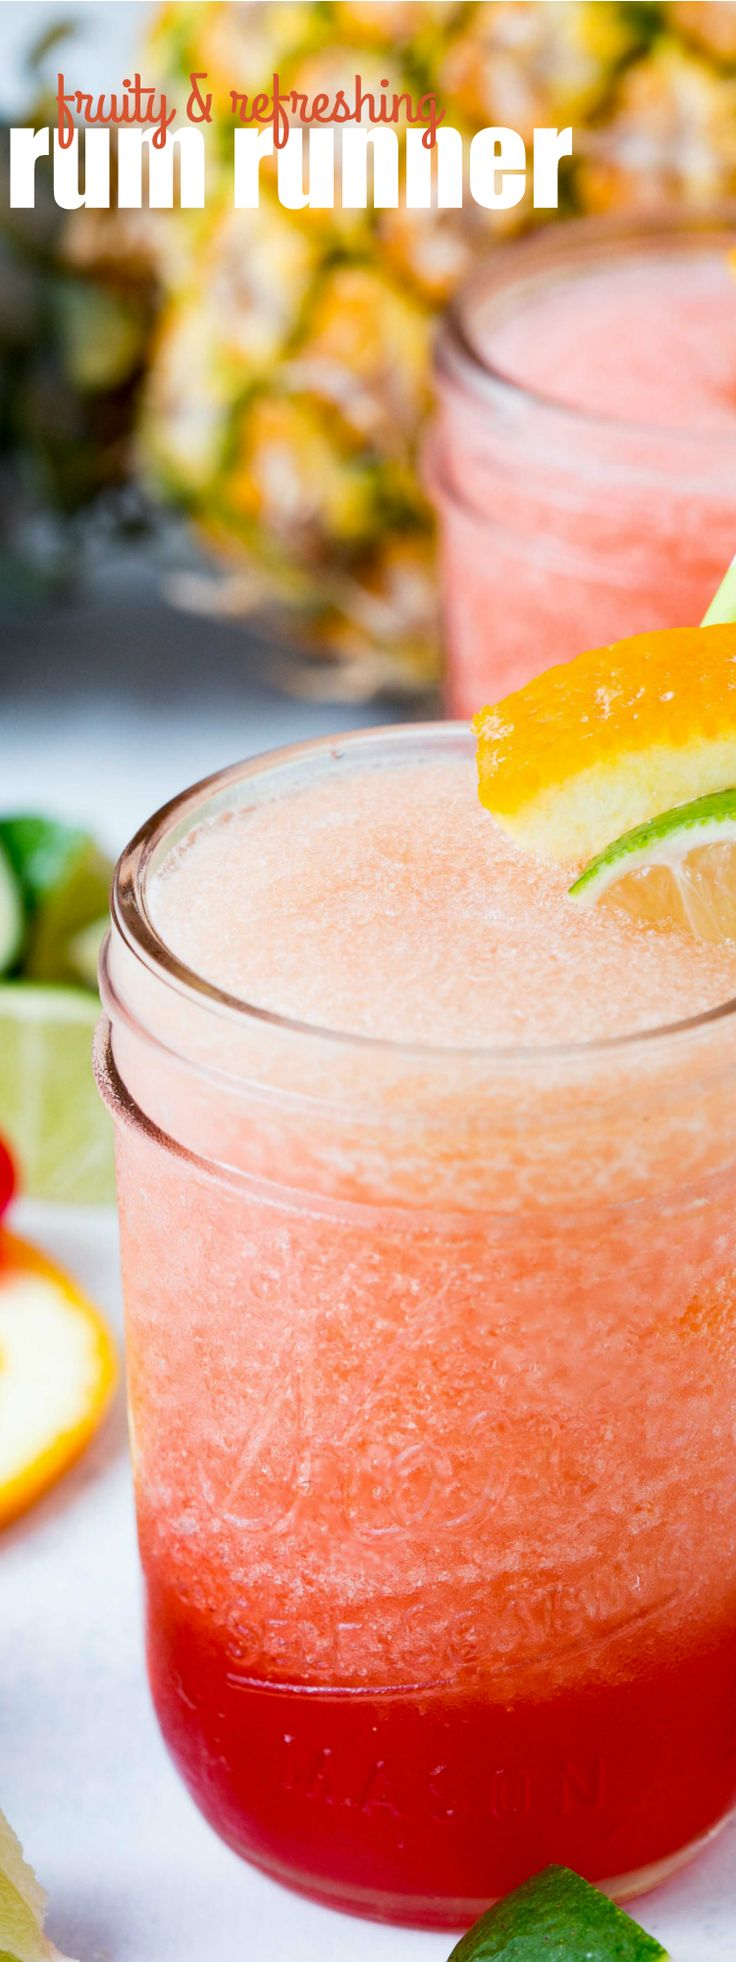 rum runner easy drinks to make the fun the o jays key west runners ...